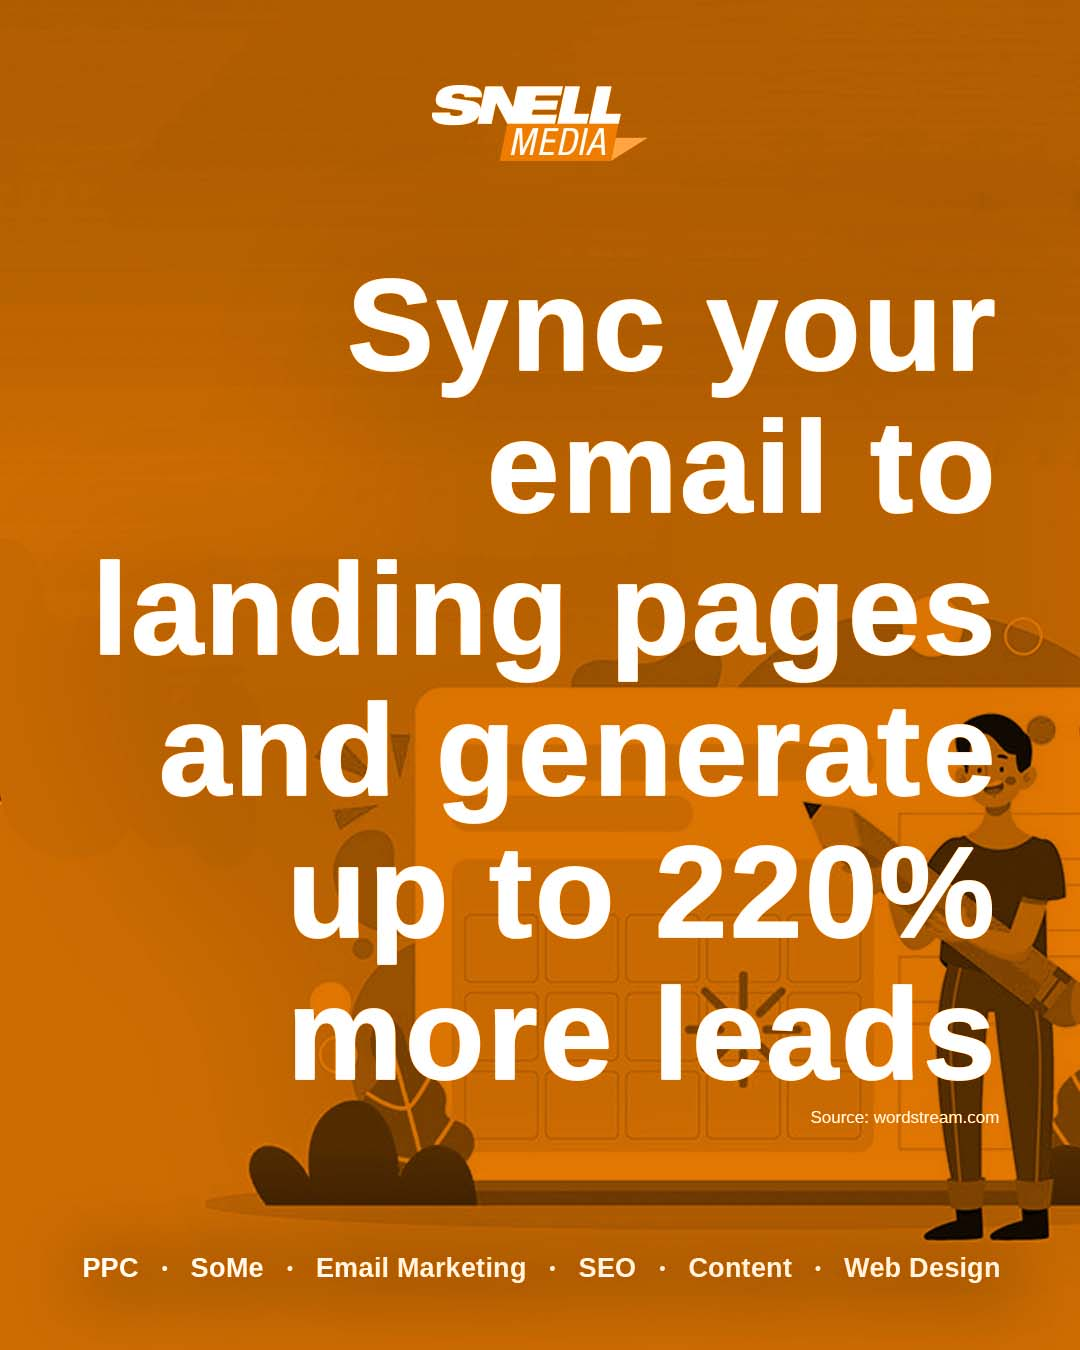 Sync Your Email to Landing Pages